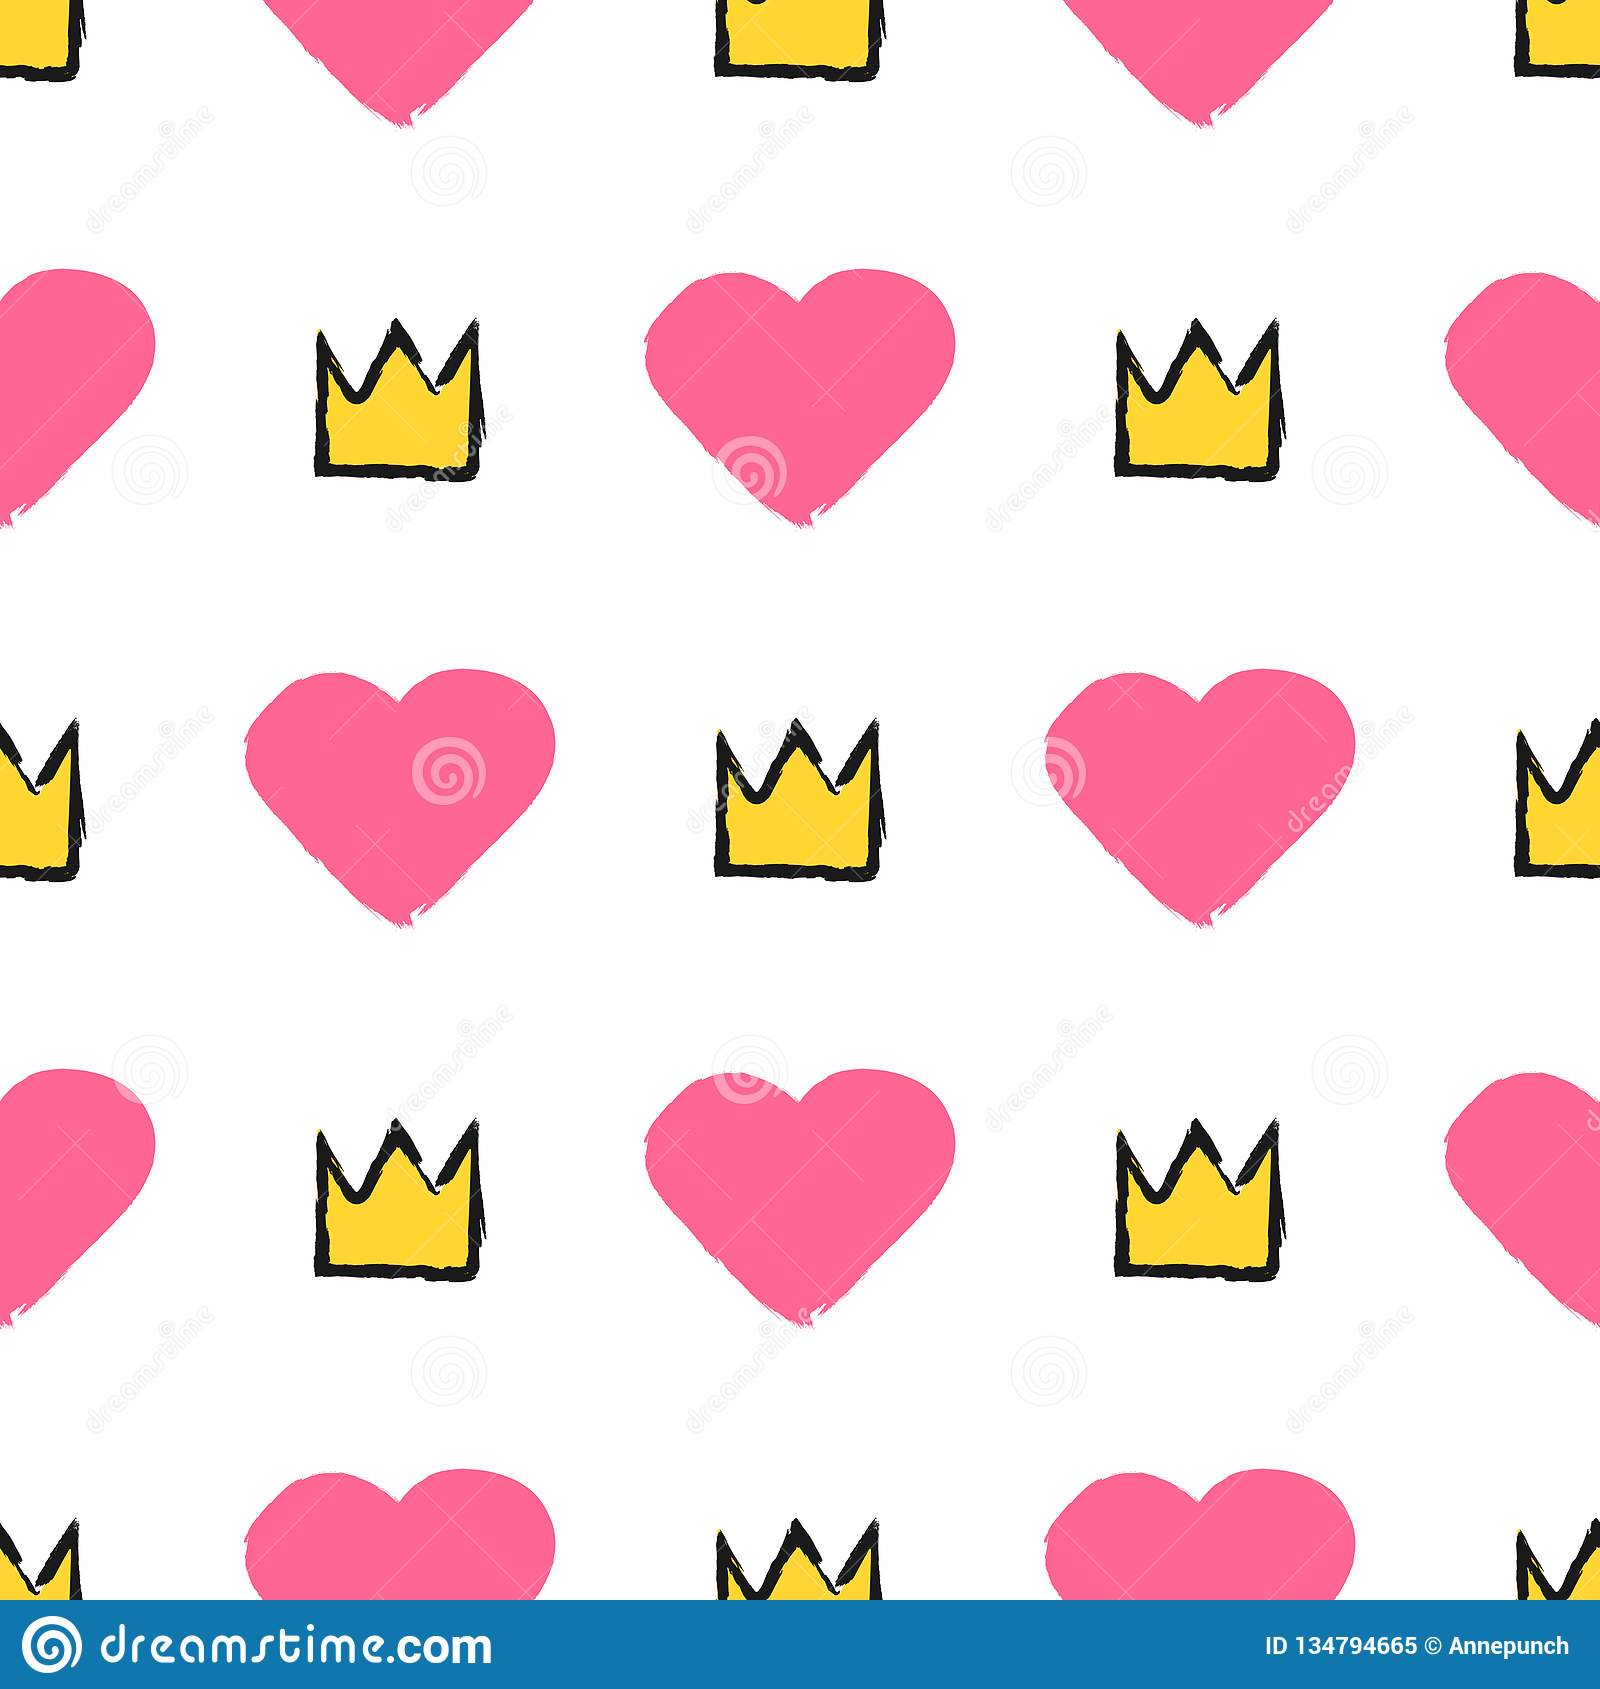 Repeating hearts and crowns drawn by hand with a rough brush. Stylish girly seamless pattern. Sketch, watercolor, paint, graffiti.